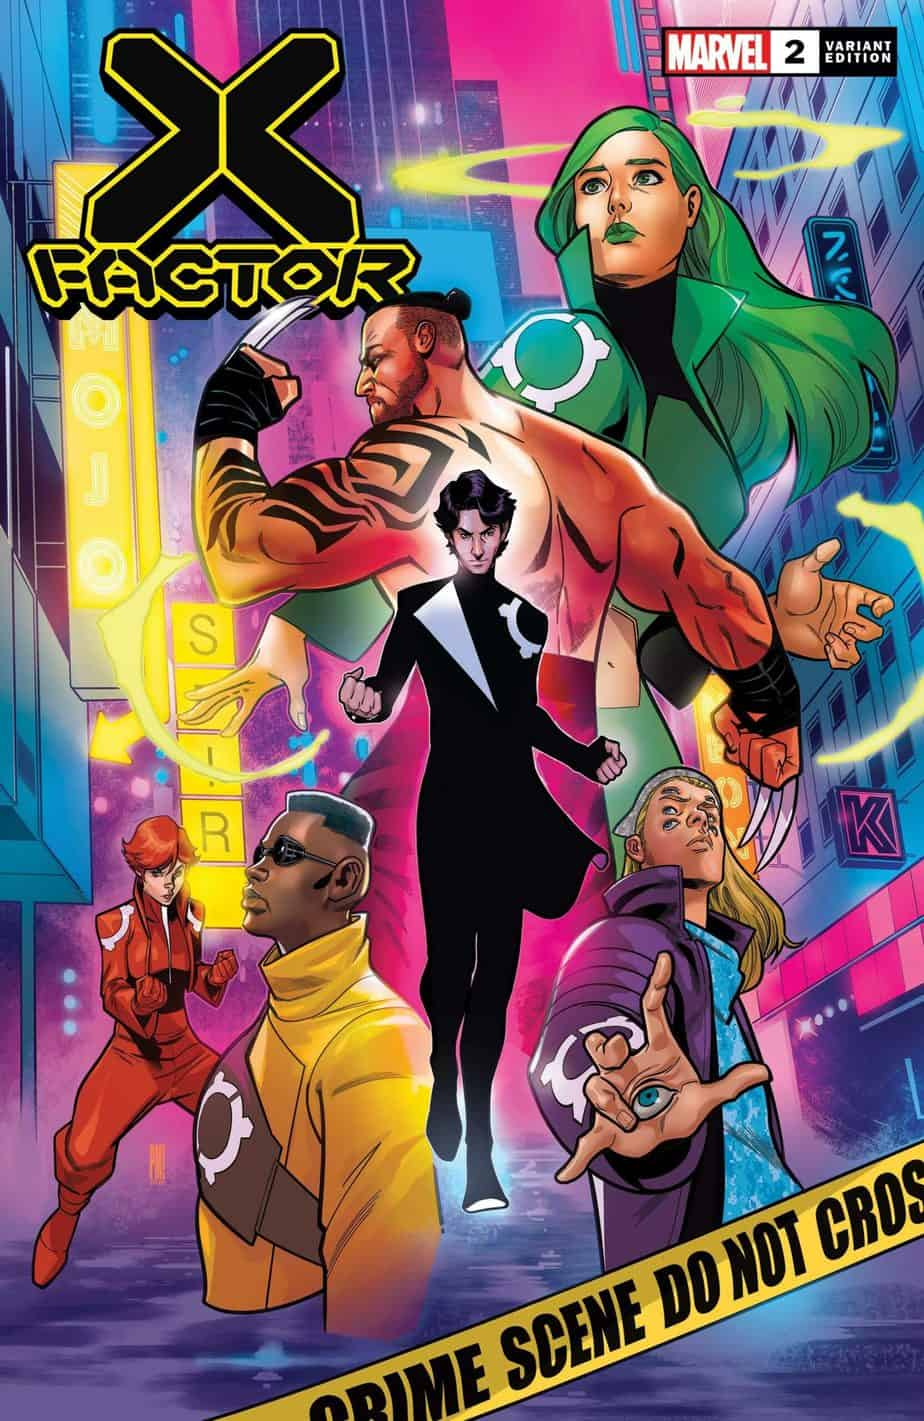 X-FACTOR #2 - Cover B